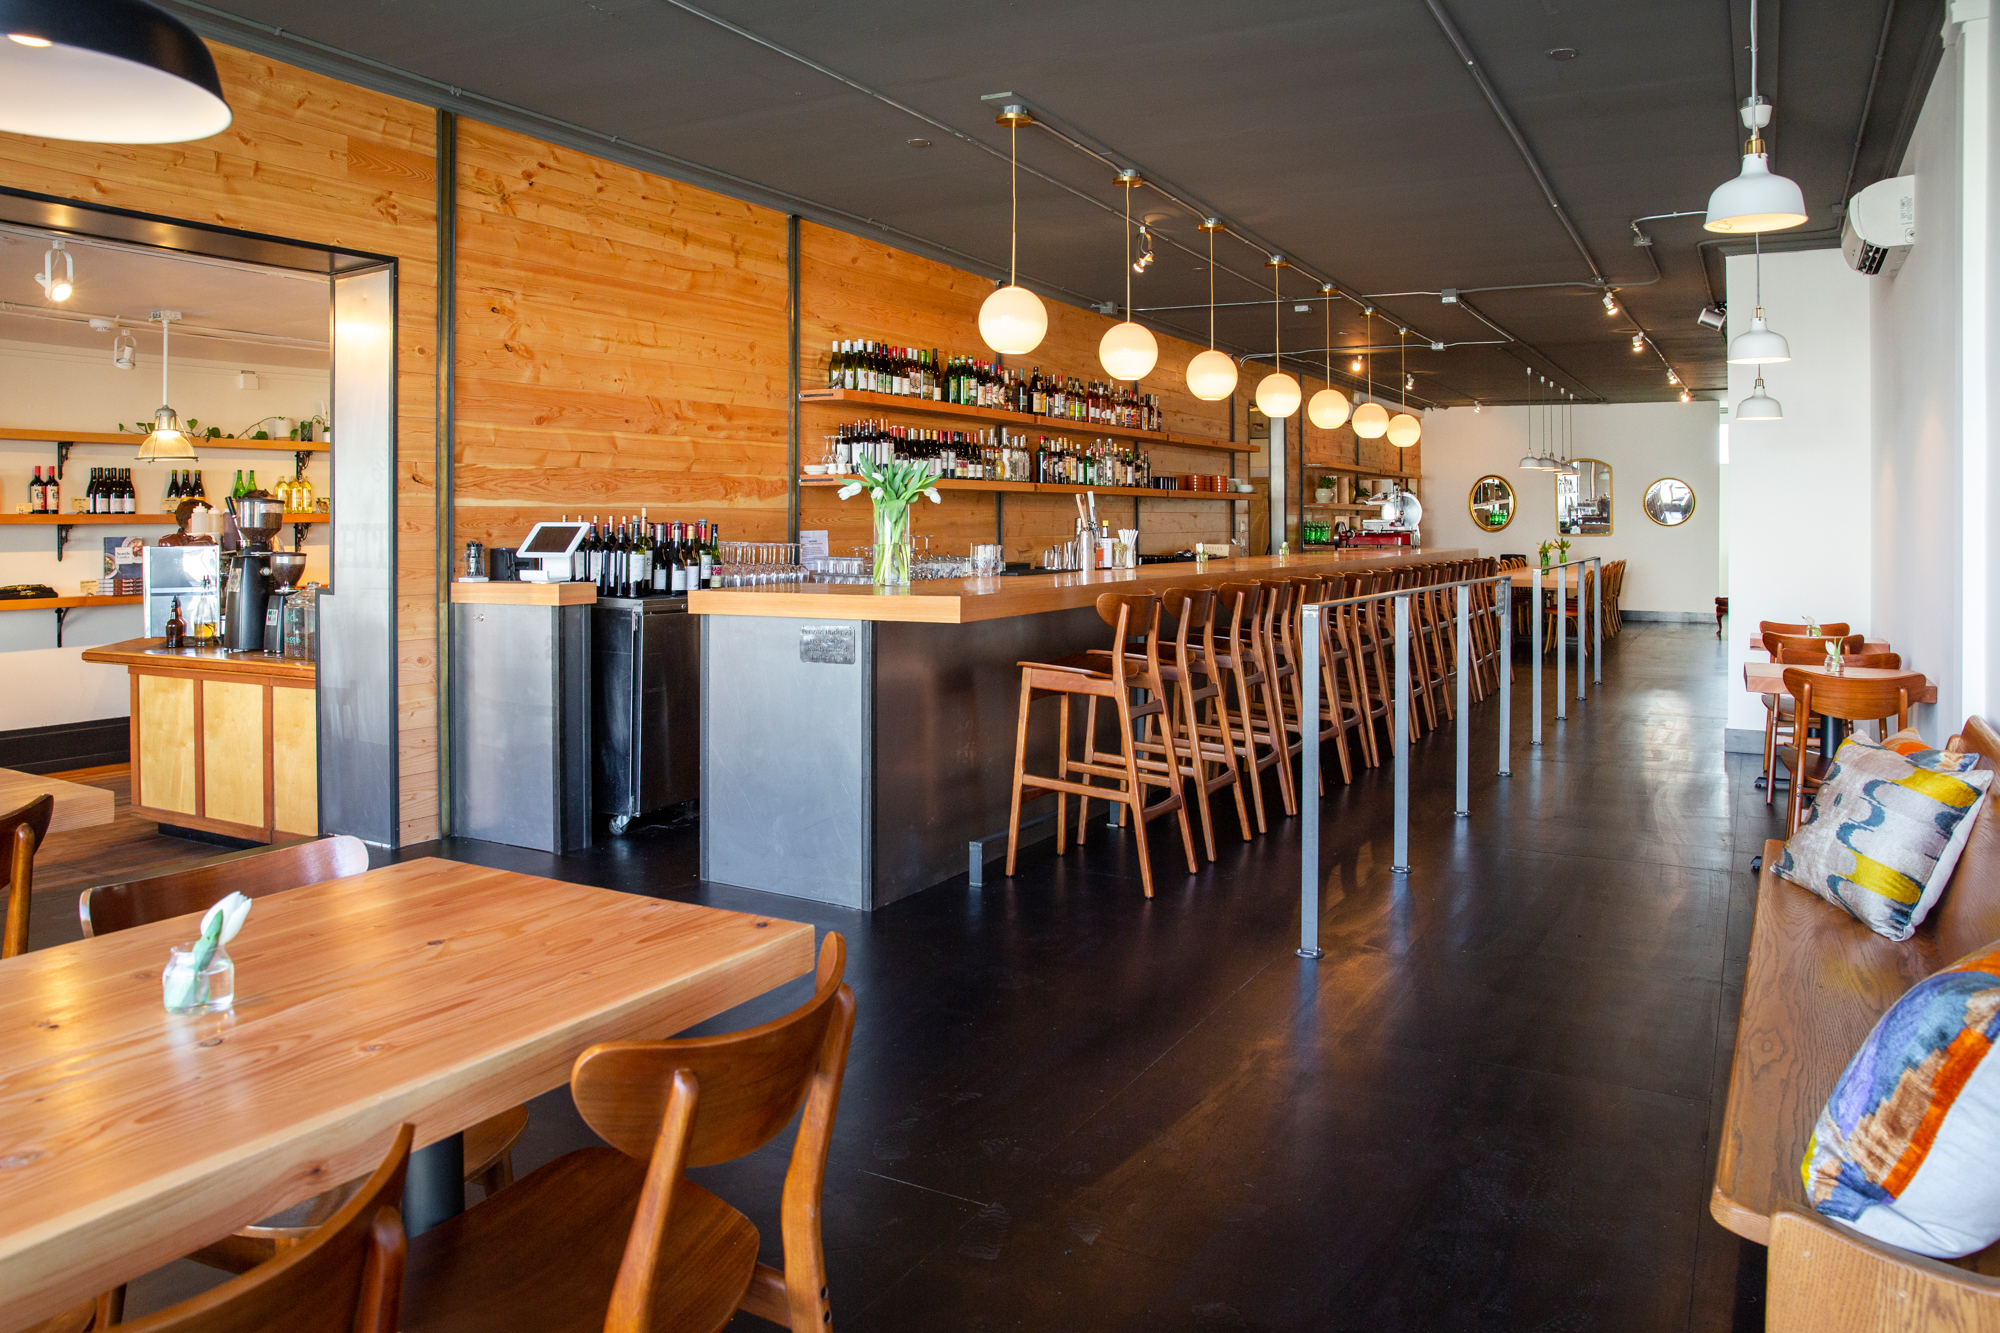 Acclaimed Bainbridge Island Chef Expands His Empire With an All-Day Cafe